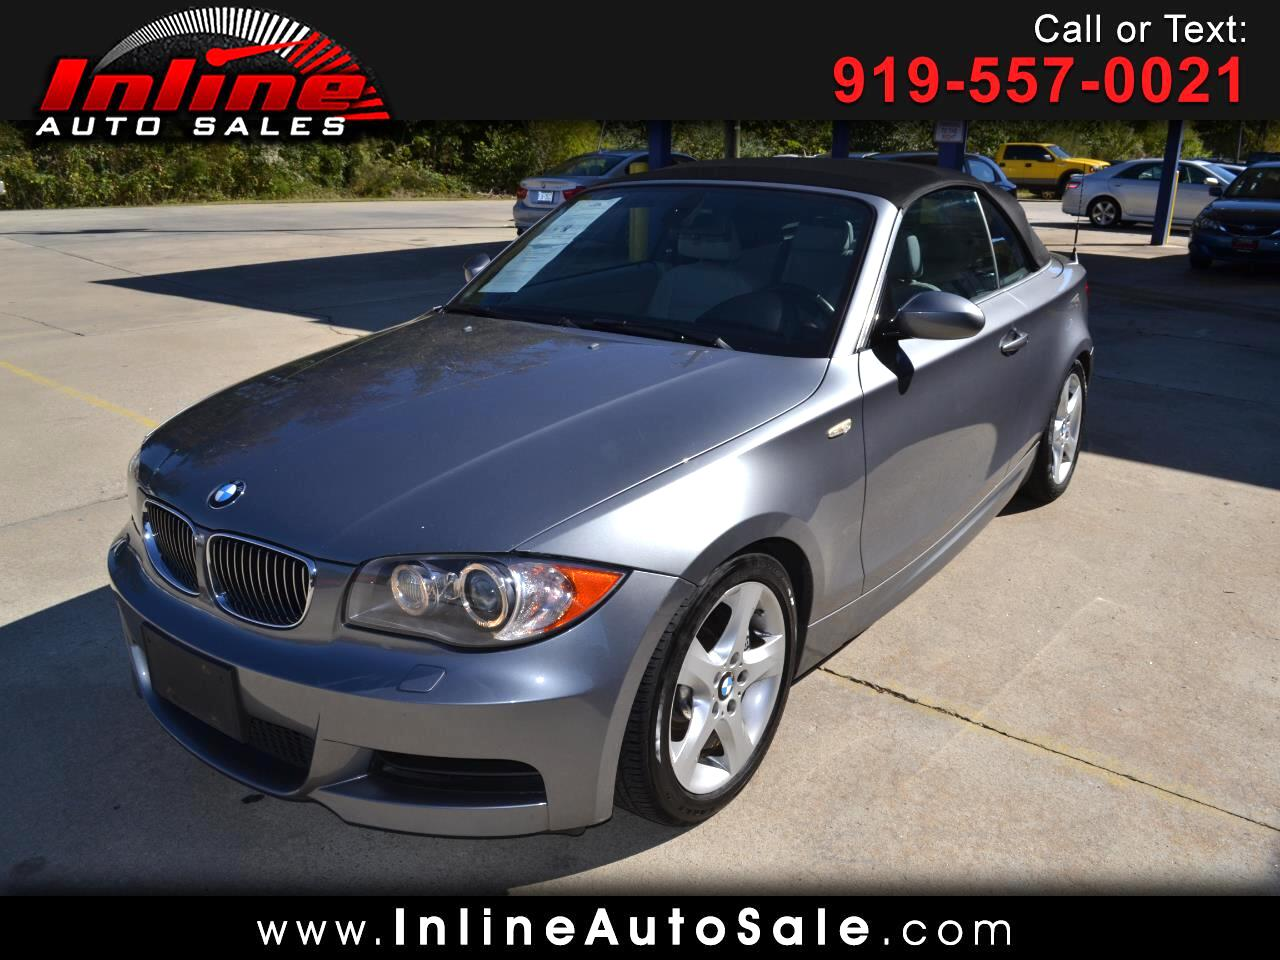 2009 BMW 1 Series 2dr Conv 135i